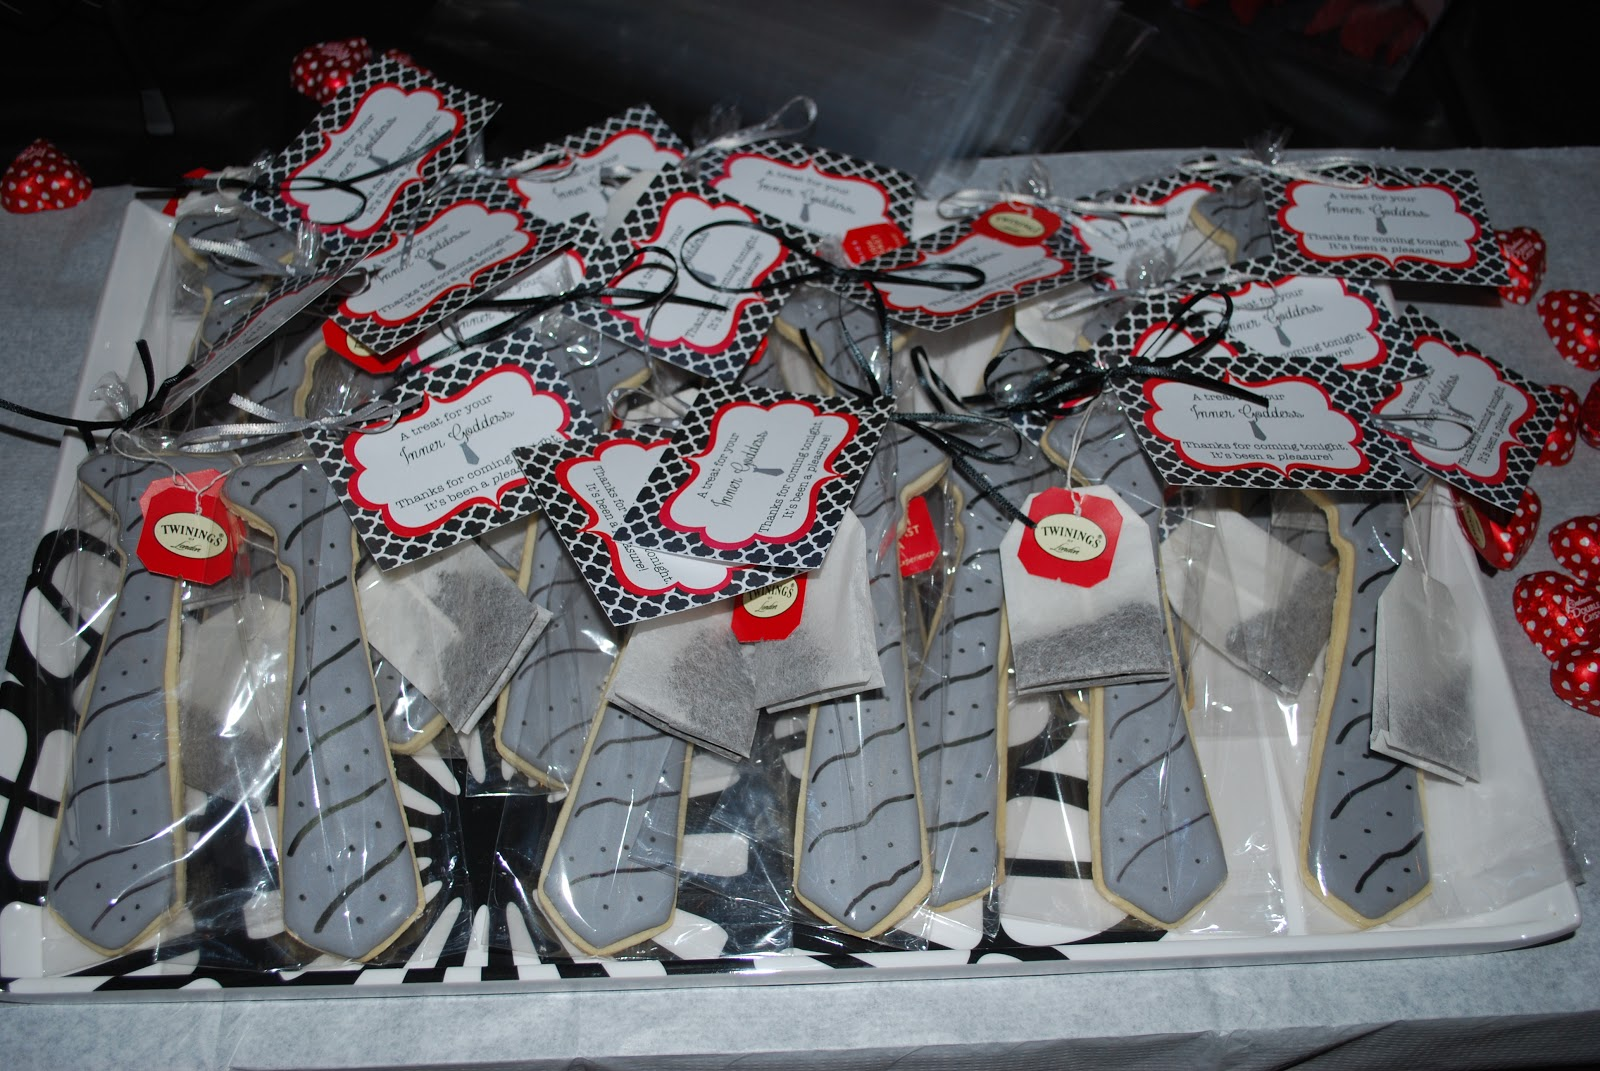 whimsy wise events fifty shades of grey party and party gray tie cookies and english tea